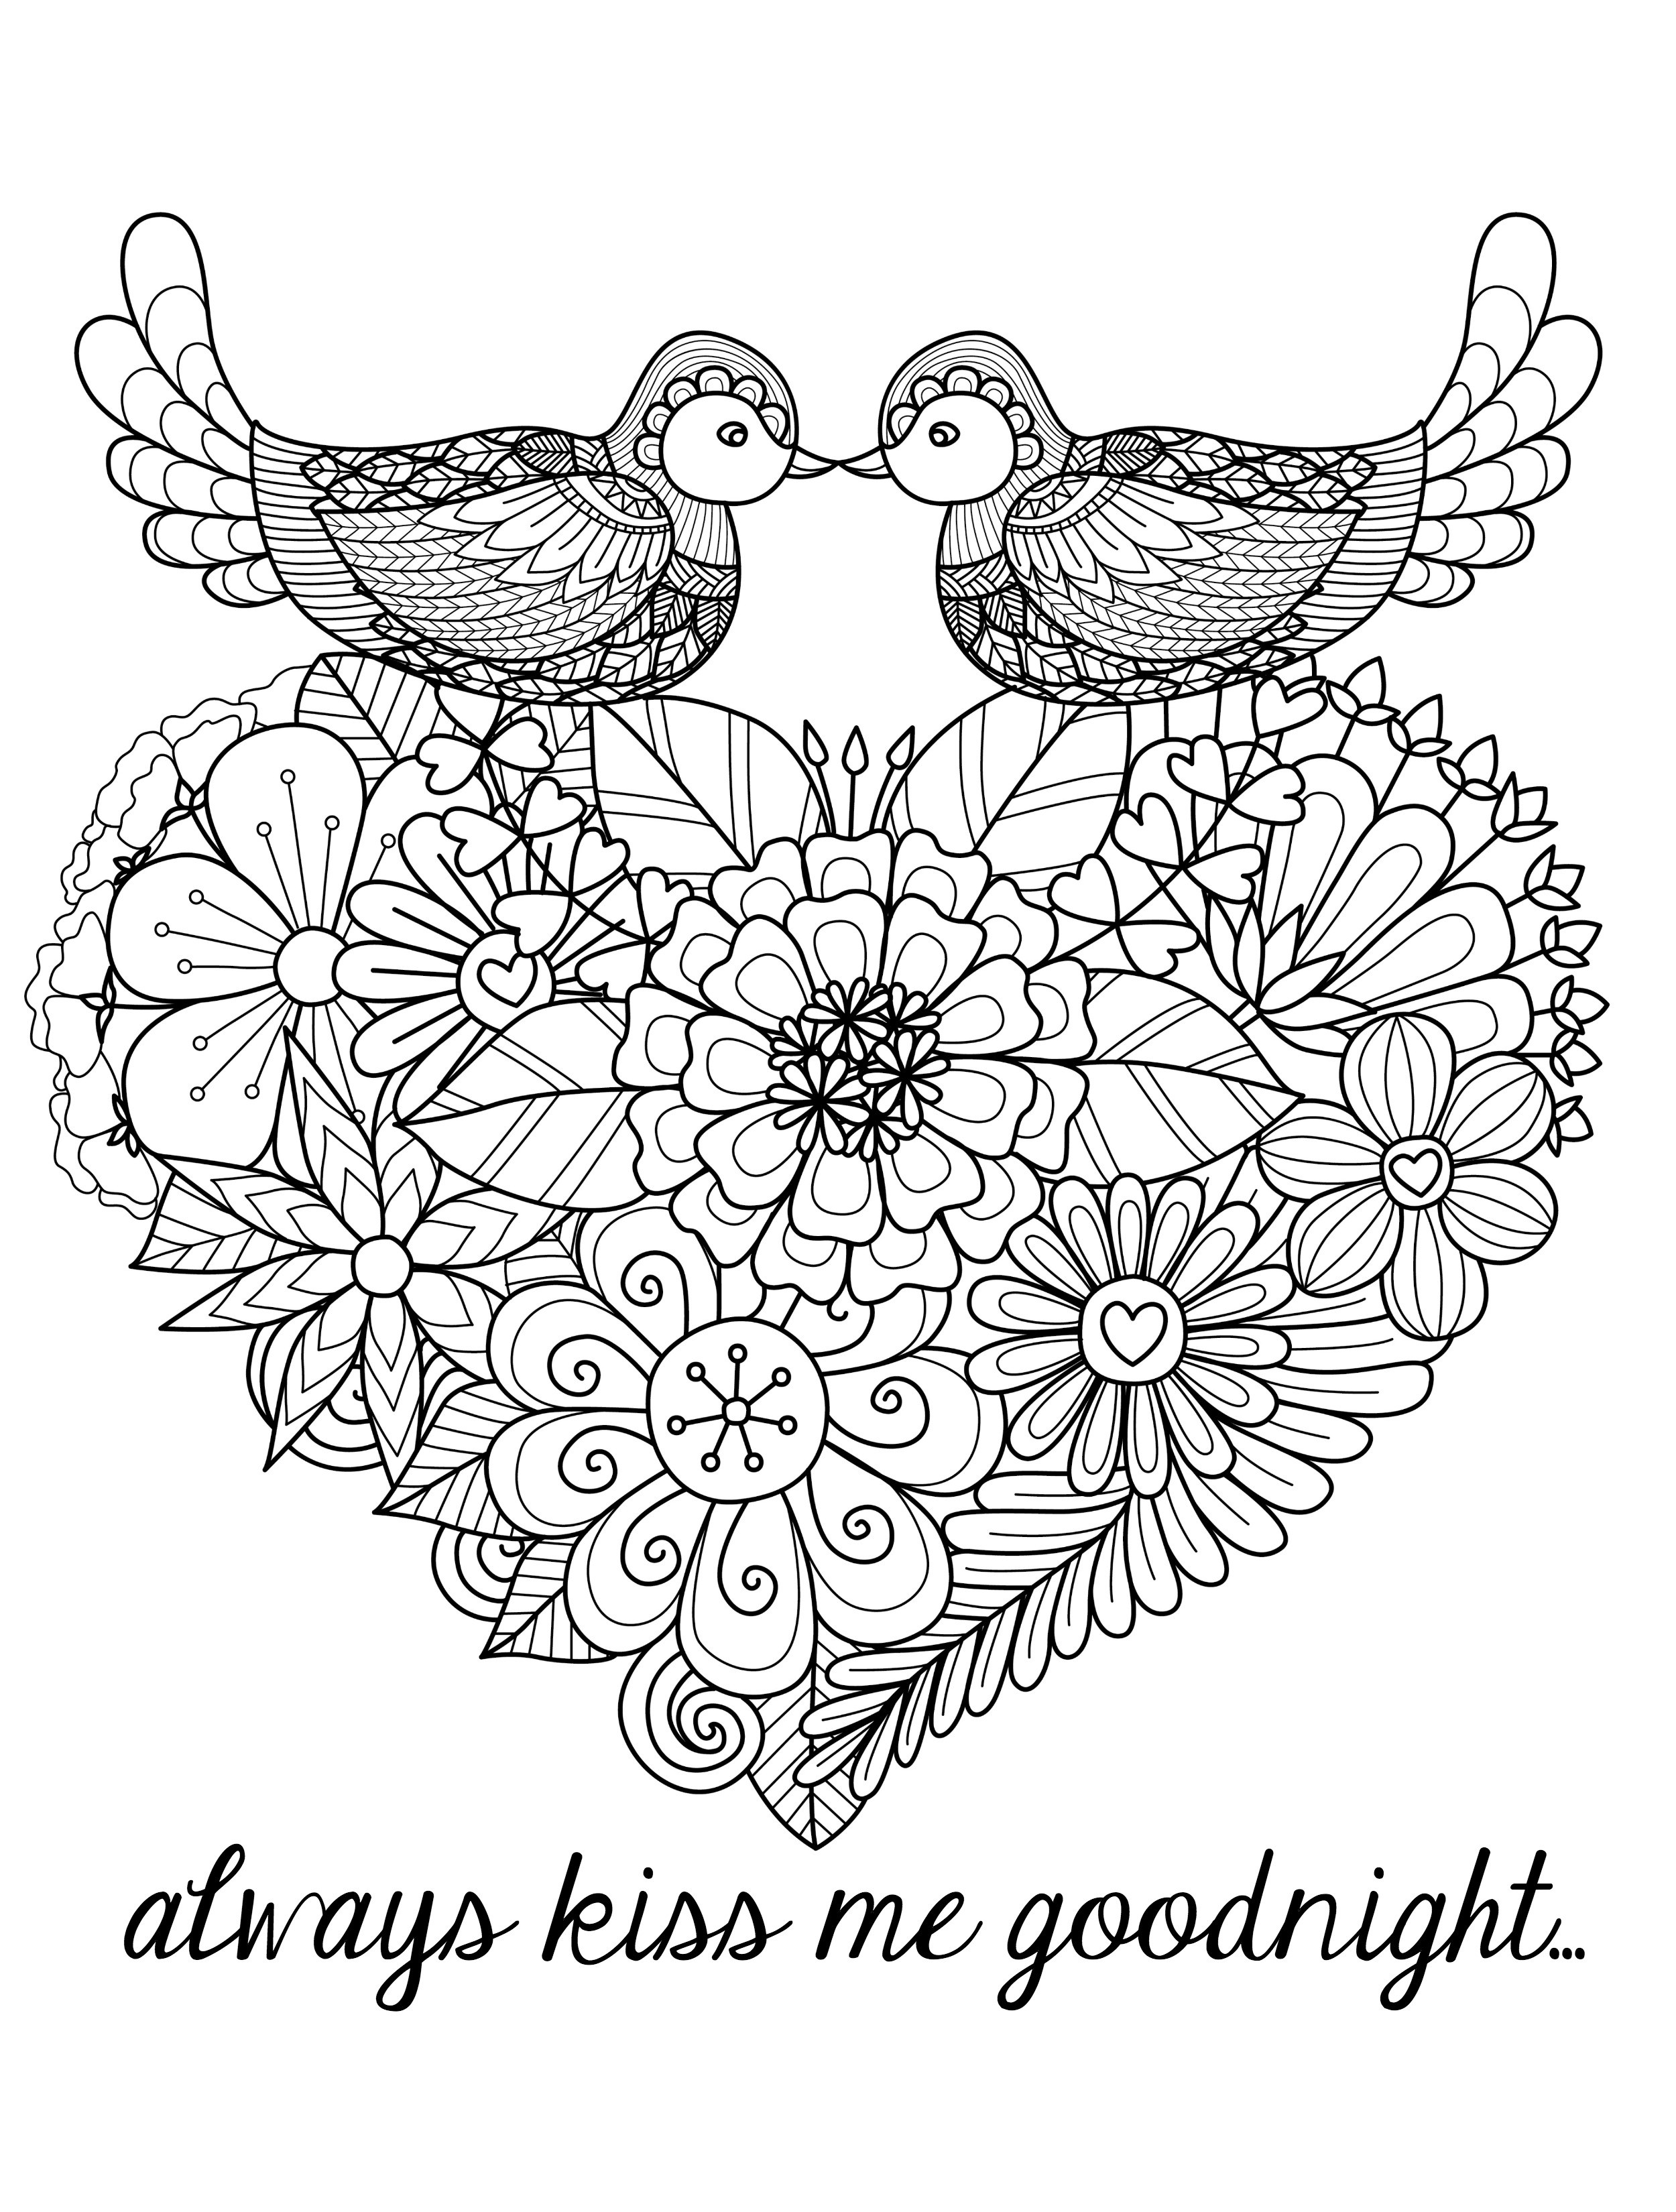 valentines coloring pages printable valentines coloring pages free coloring pages for kids printable valentines pages coloring